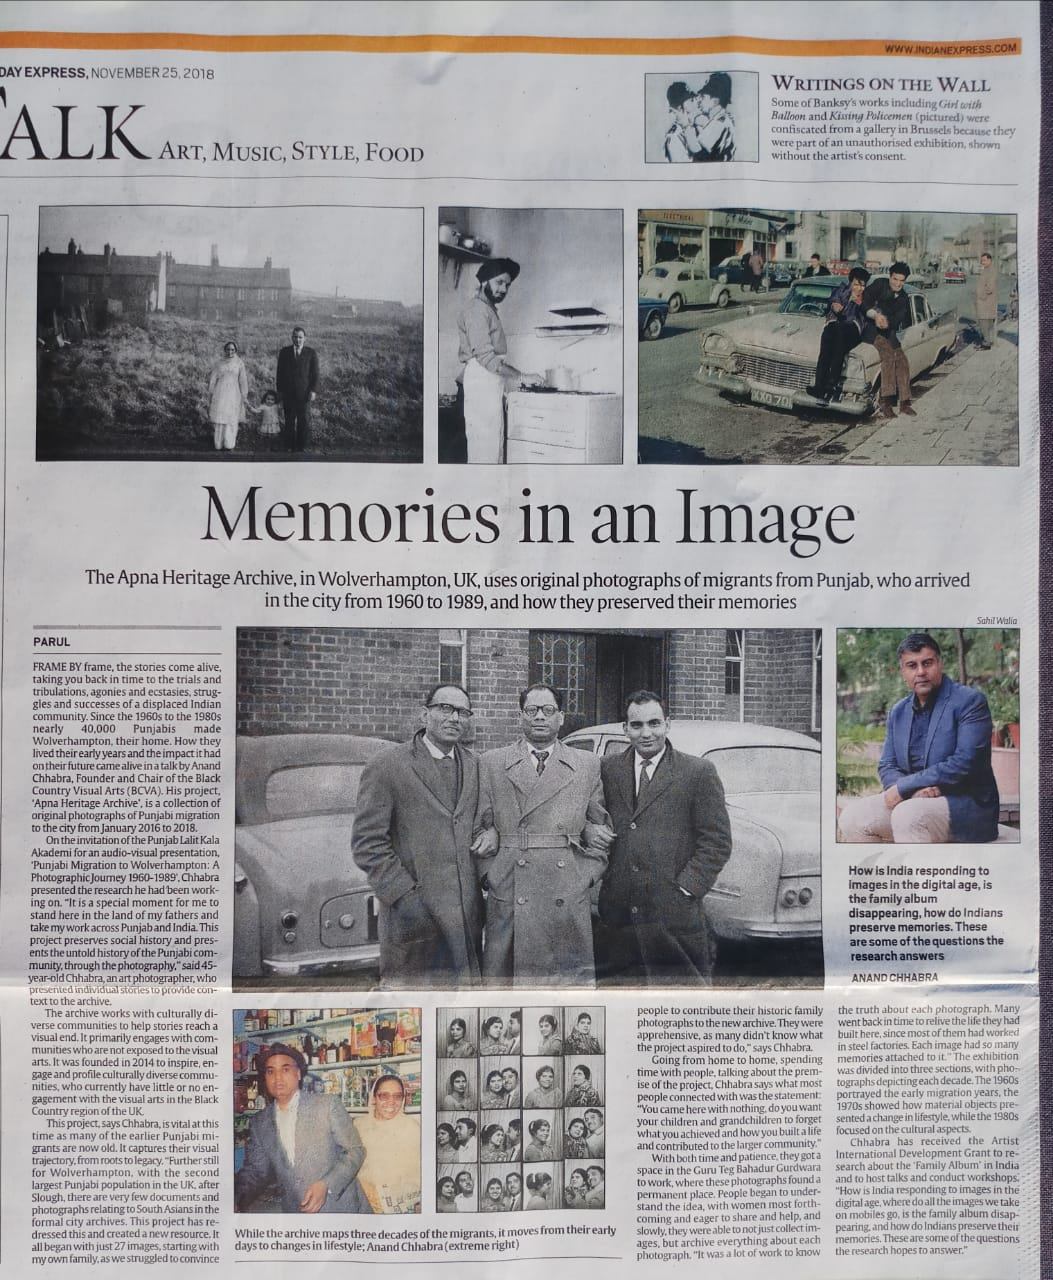 PUNJAB, INDIA  - News about the archive reached the media and was represented across various media in India c/o Diwan Manna (president of the Punjab Lalit Kala Akademi. This was a full page in the broadsheet Indian Express after interview with Anand Chhabra in India and the filmed interview by Parul has been broadcast by Punjabi channels internationally including the UK!